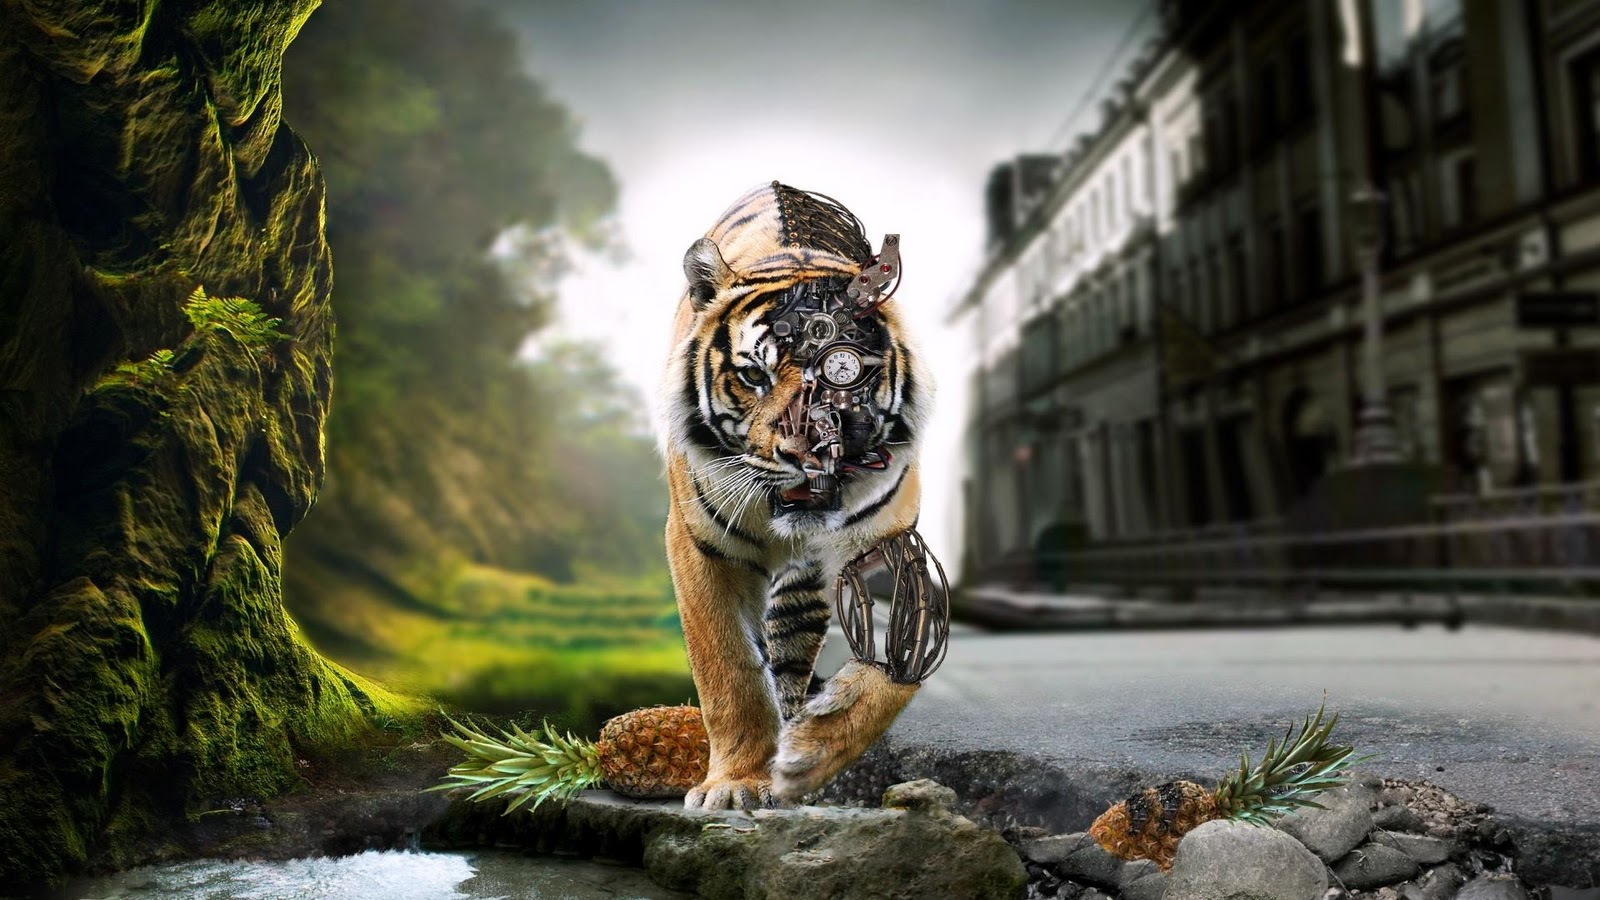 http://4.bp.blogspot.com/-zM-L_Irm2Nw/Tx6Z_rNksmI/AAAAAAAAAnI/dmzkJPWCrwY/s1600/Digital-Art-Tiger-Wallpaper-1080p-High-Definition.jpg